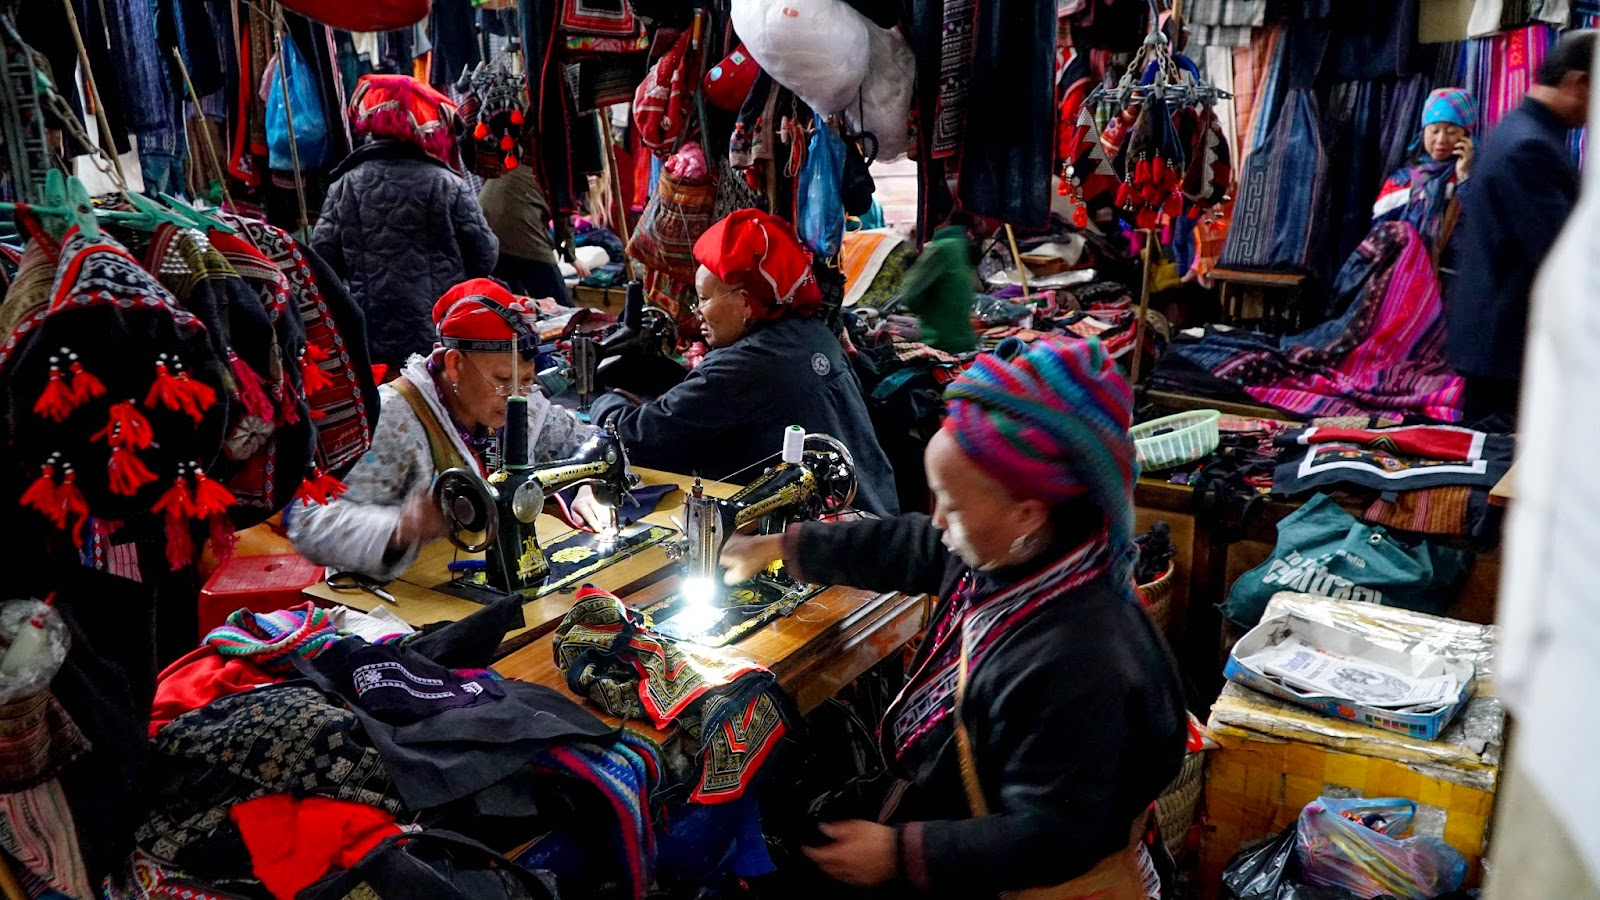 Busy Hmong ladies at work in the market. Some offer to personalize your souvenirs if you buy from them